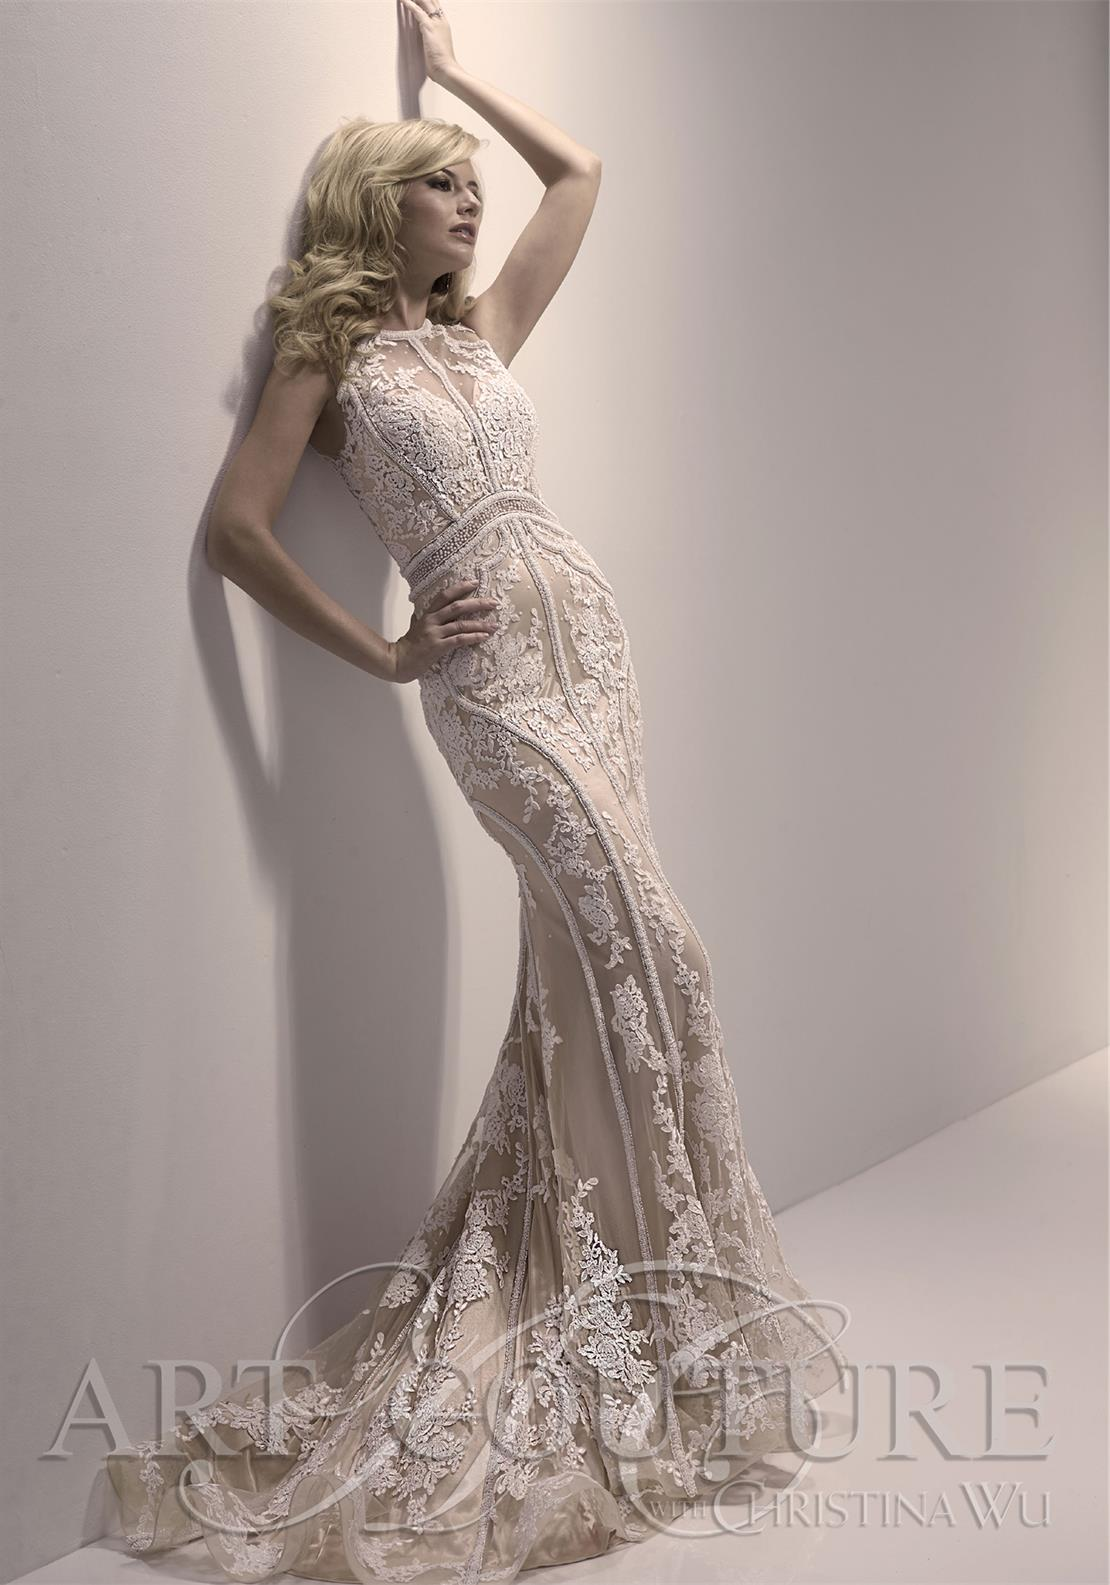 ART COUTURE BRIDAL 8 IVO